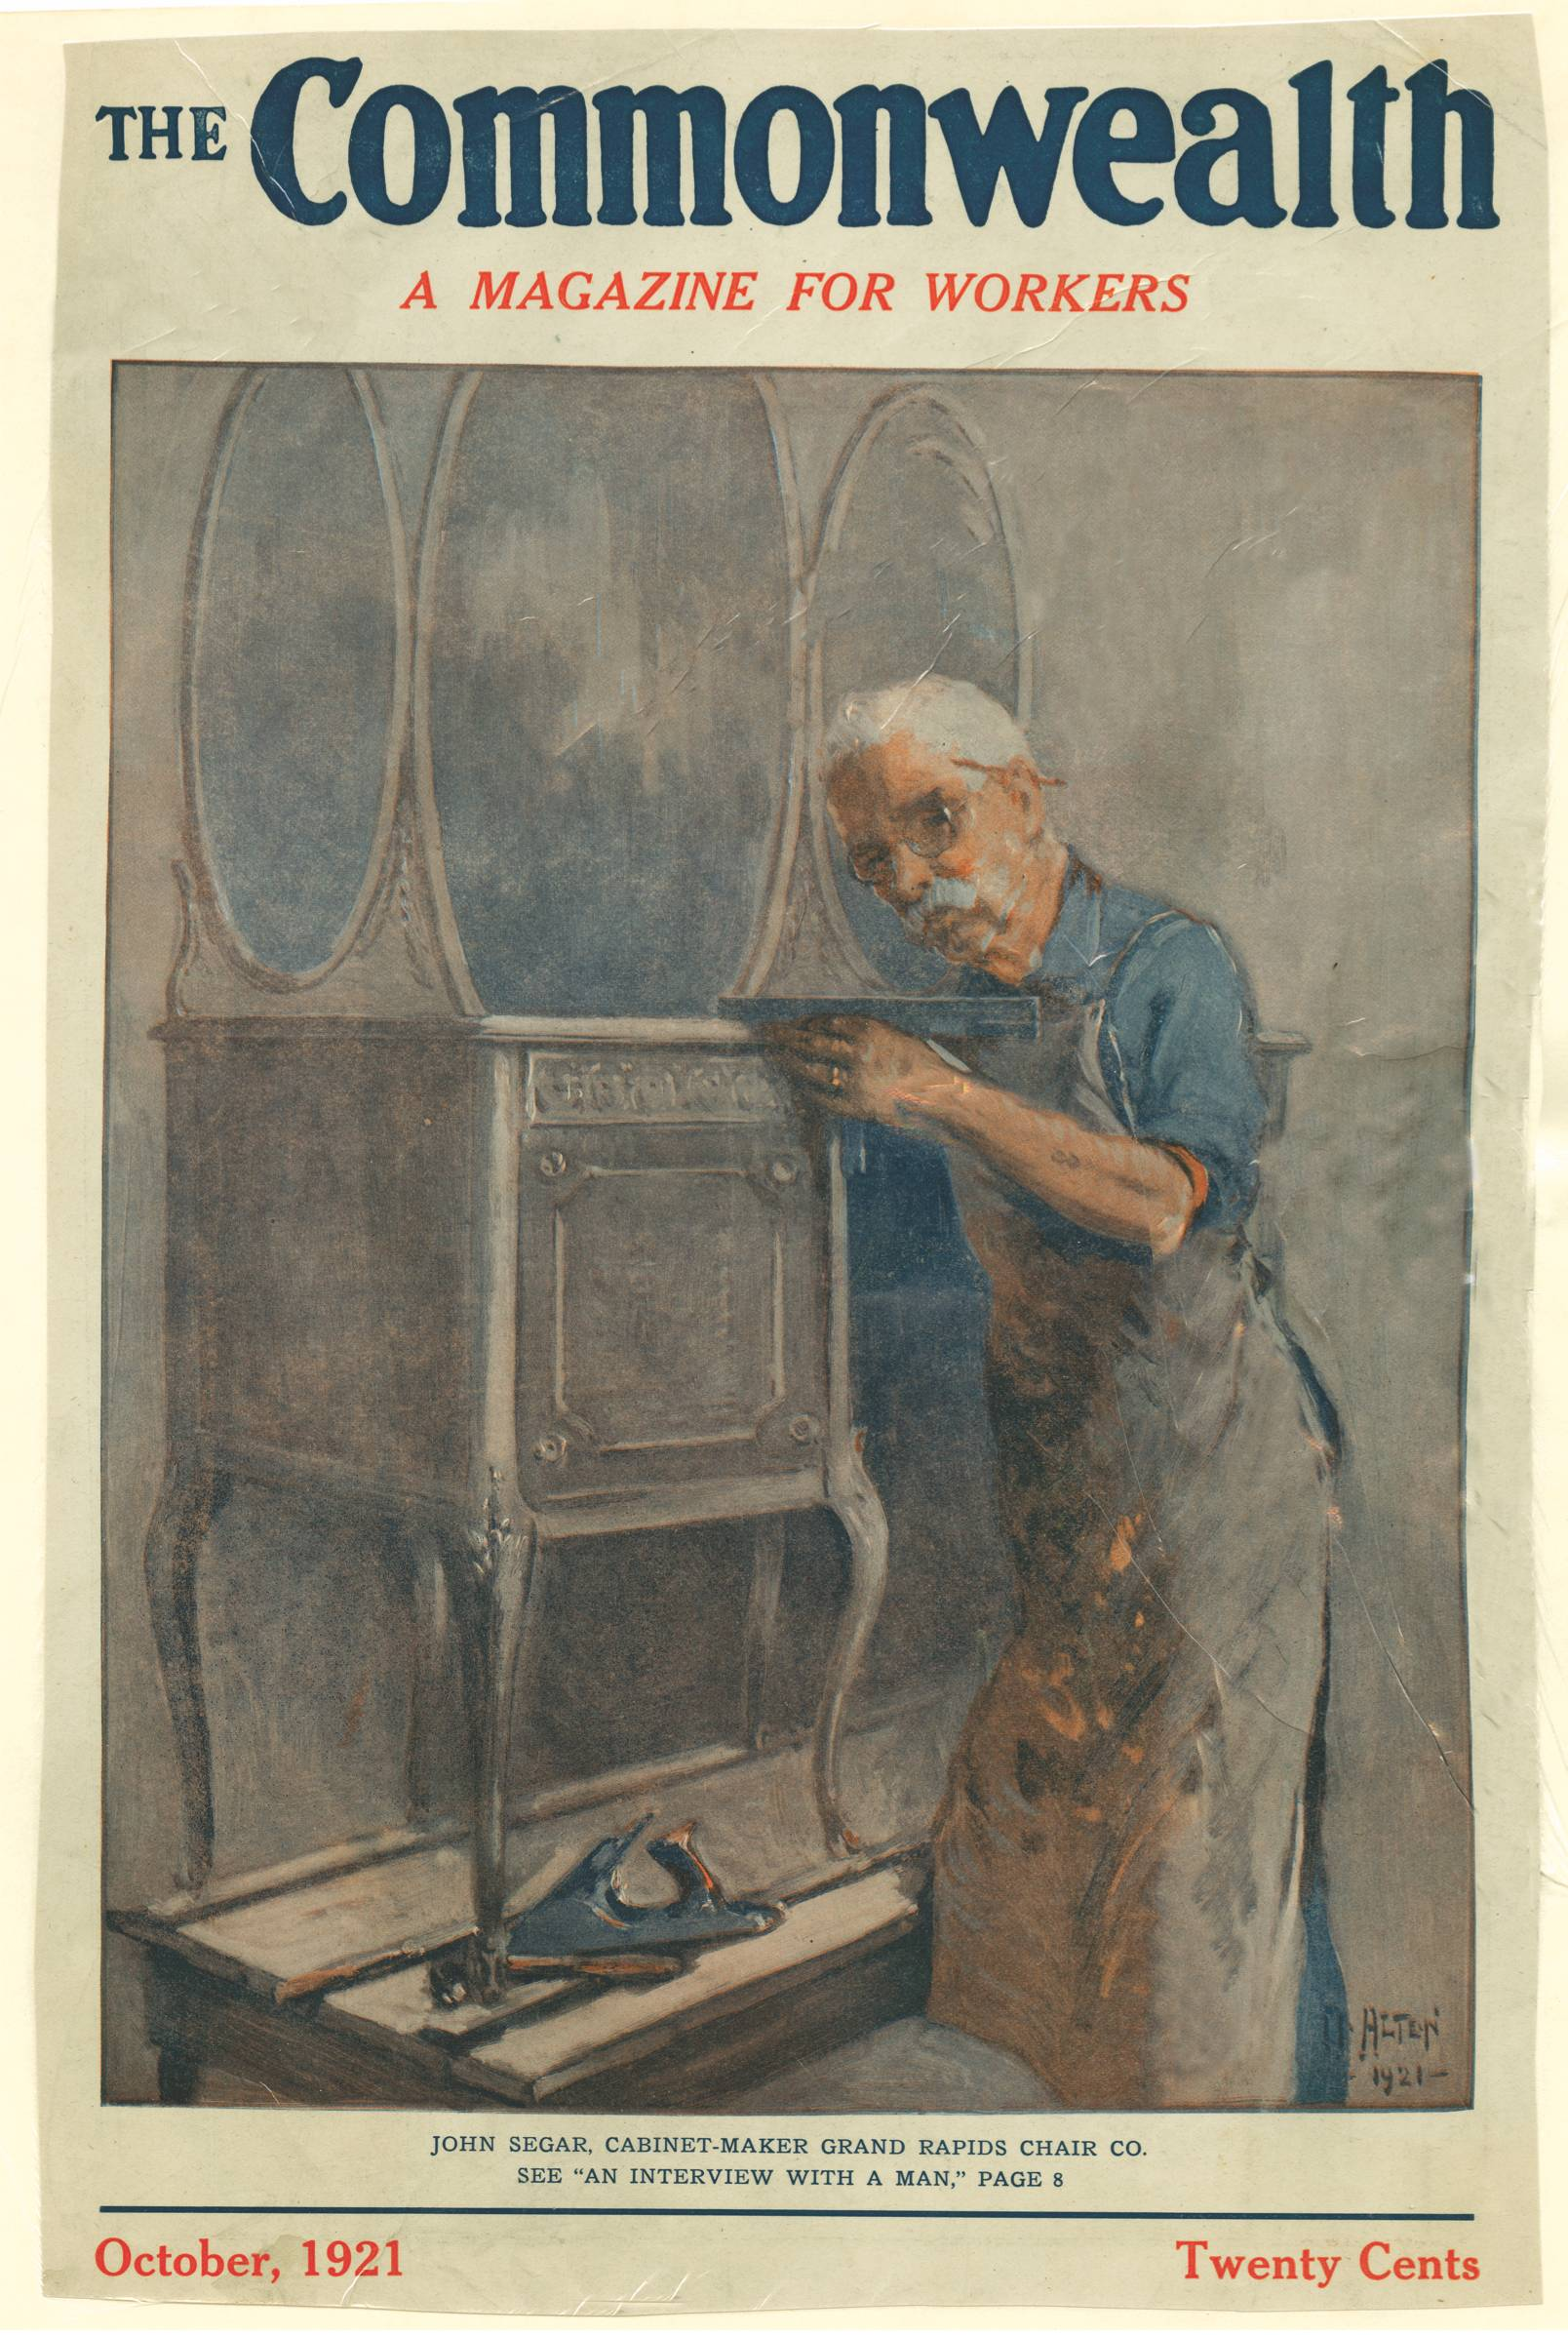 Magazine cover of Commonwealth published in October, 1921 depicting a workman making a vanity desk.